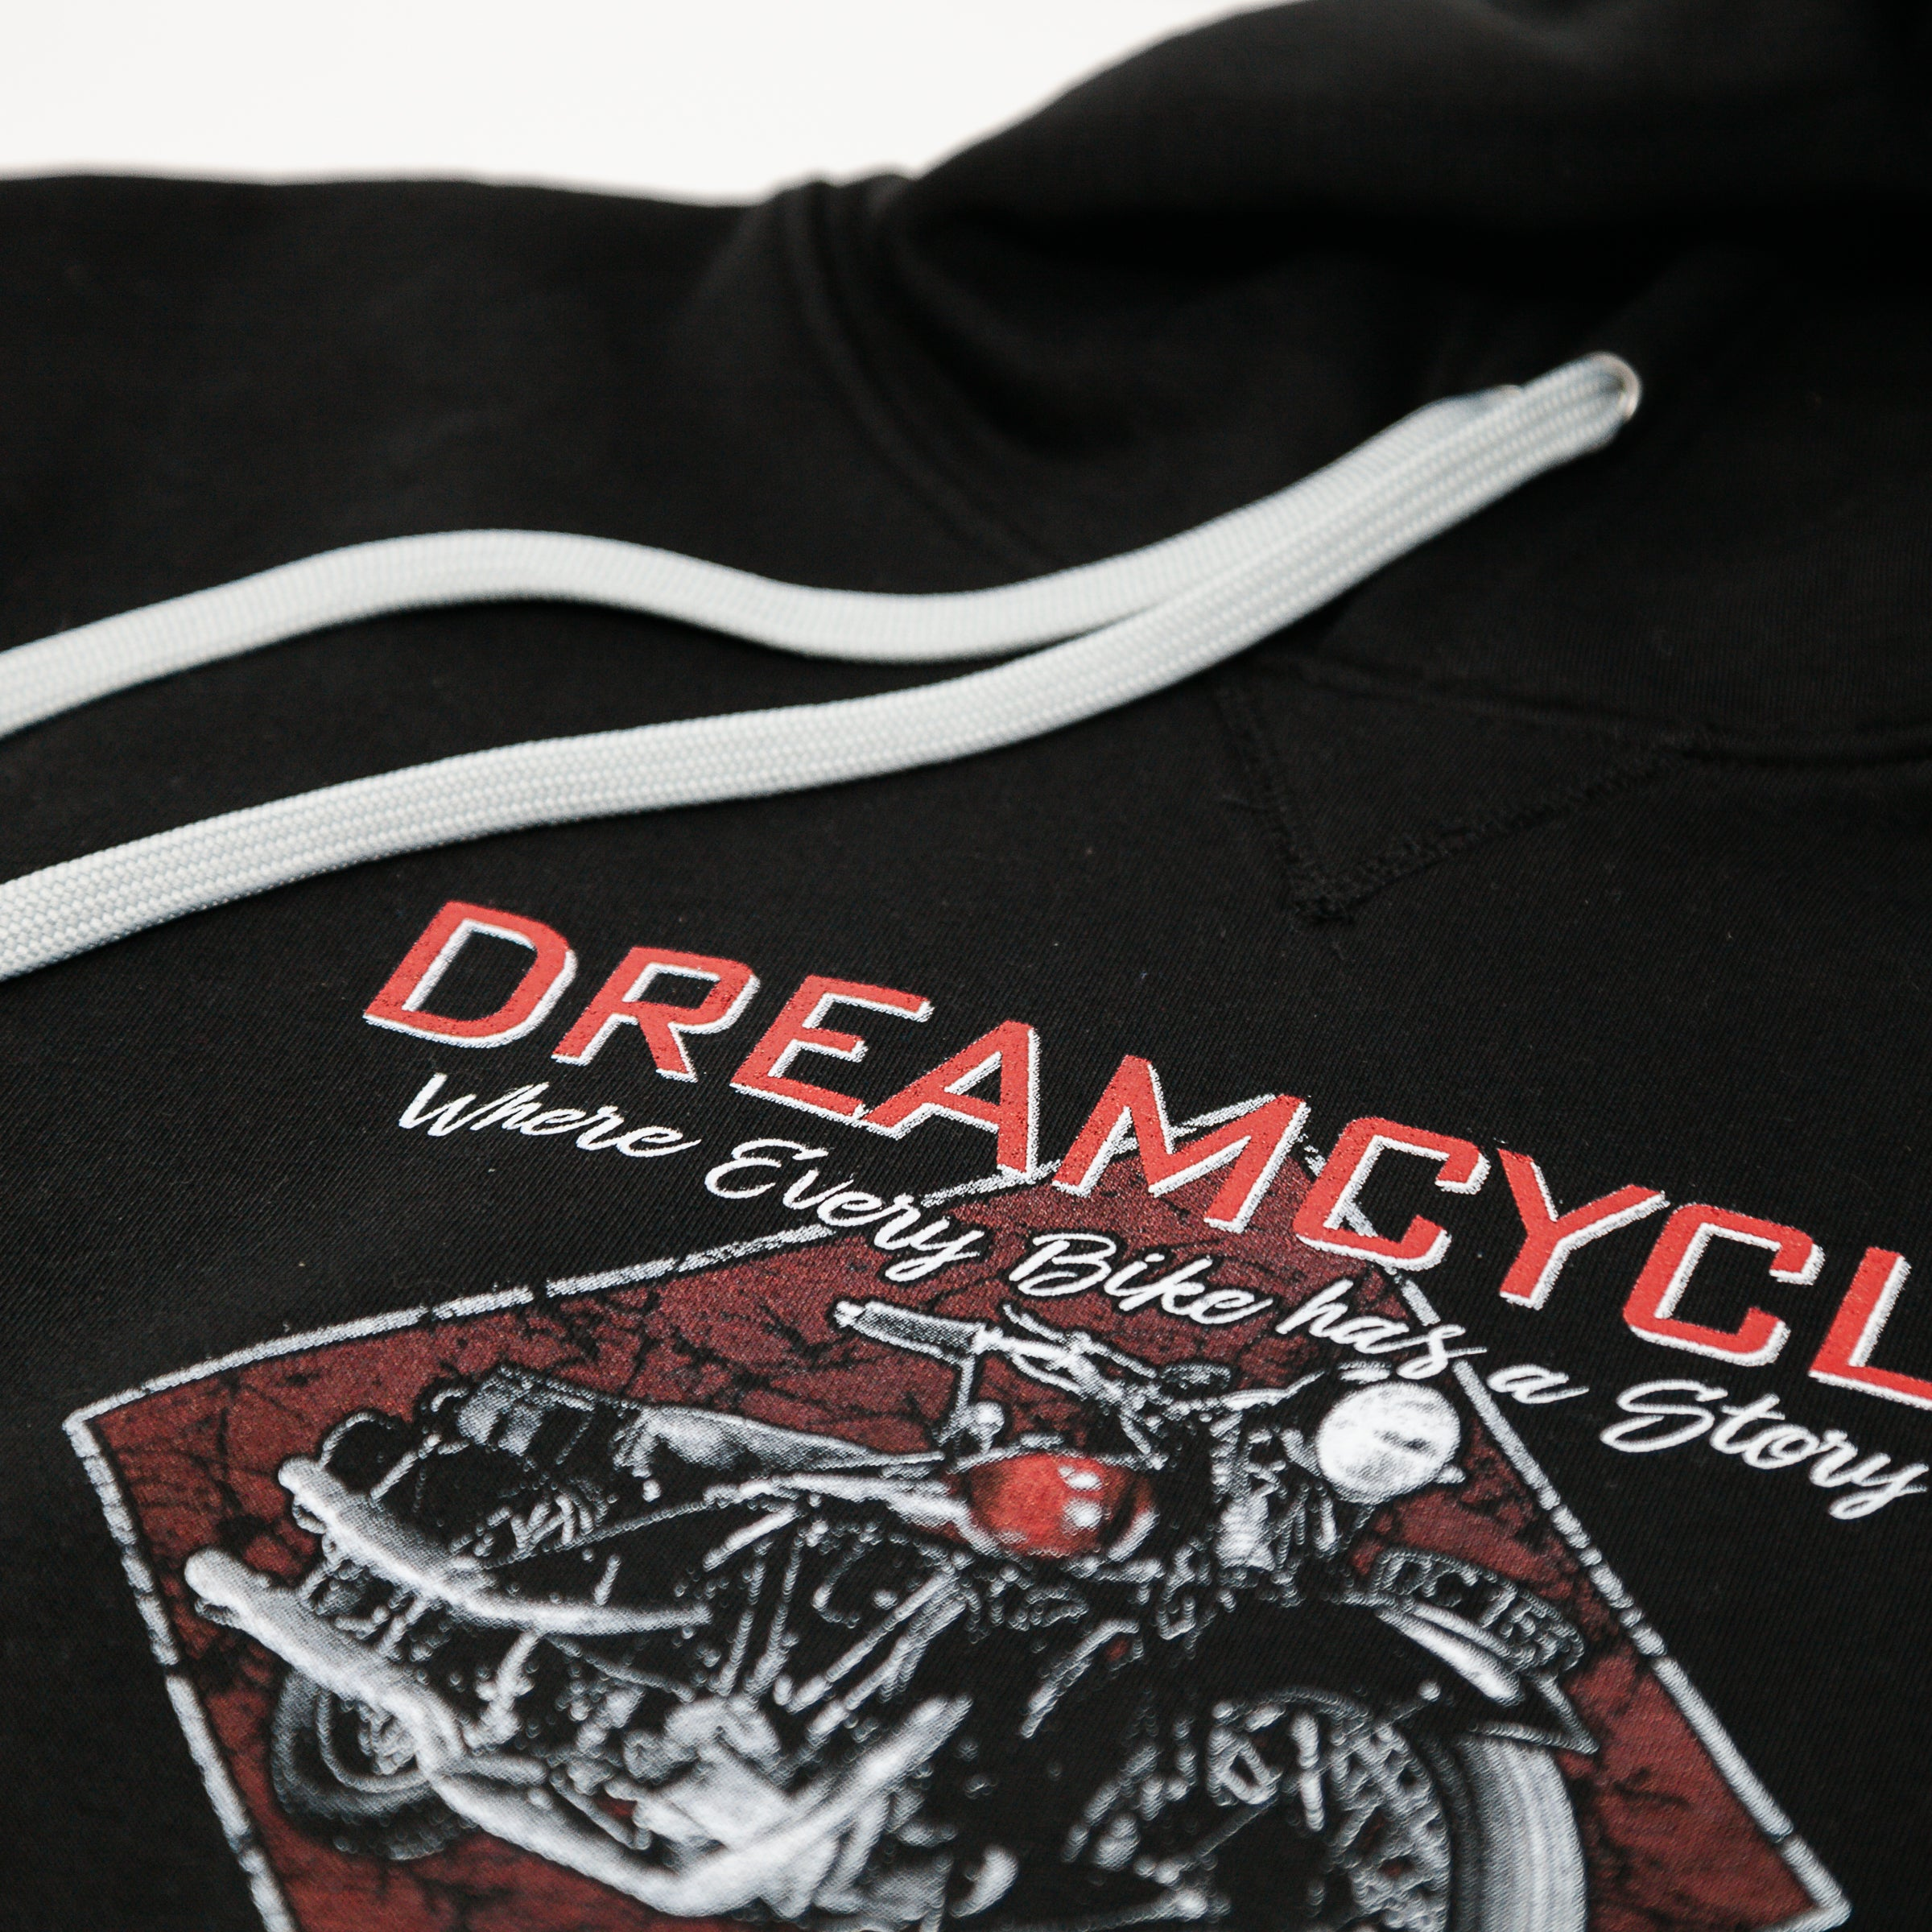 Dreamcycle Motorcycle Museum |  Dreamcycle Hoodie on white background.